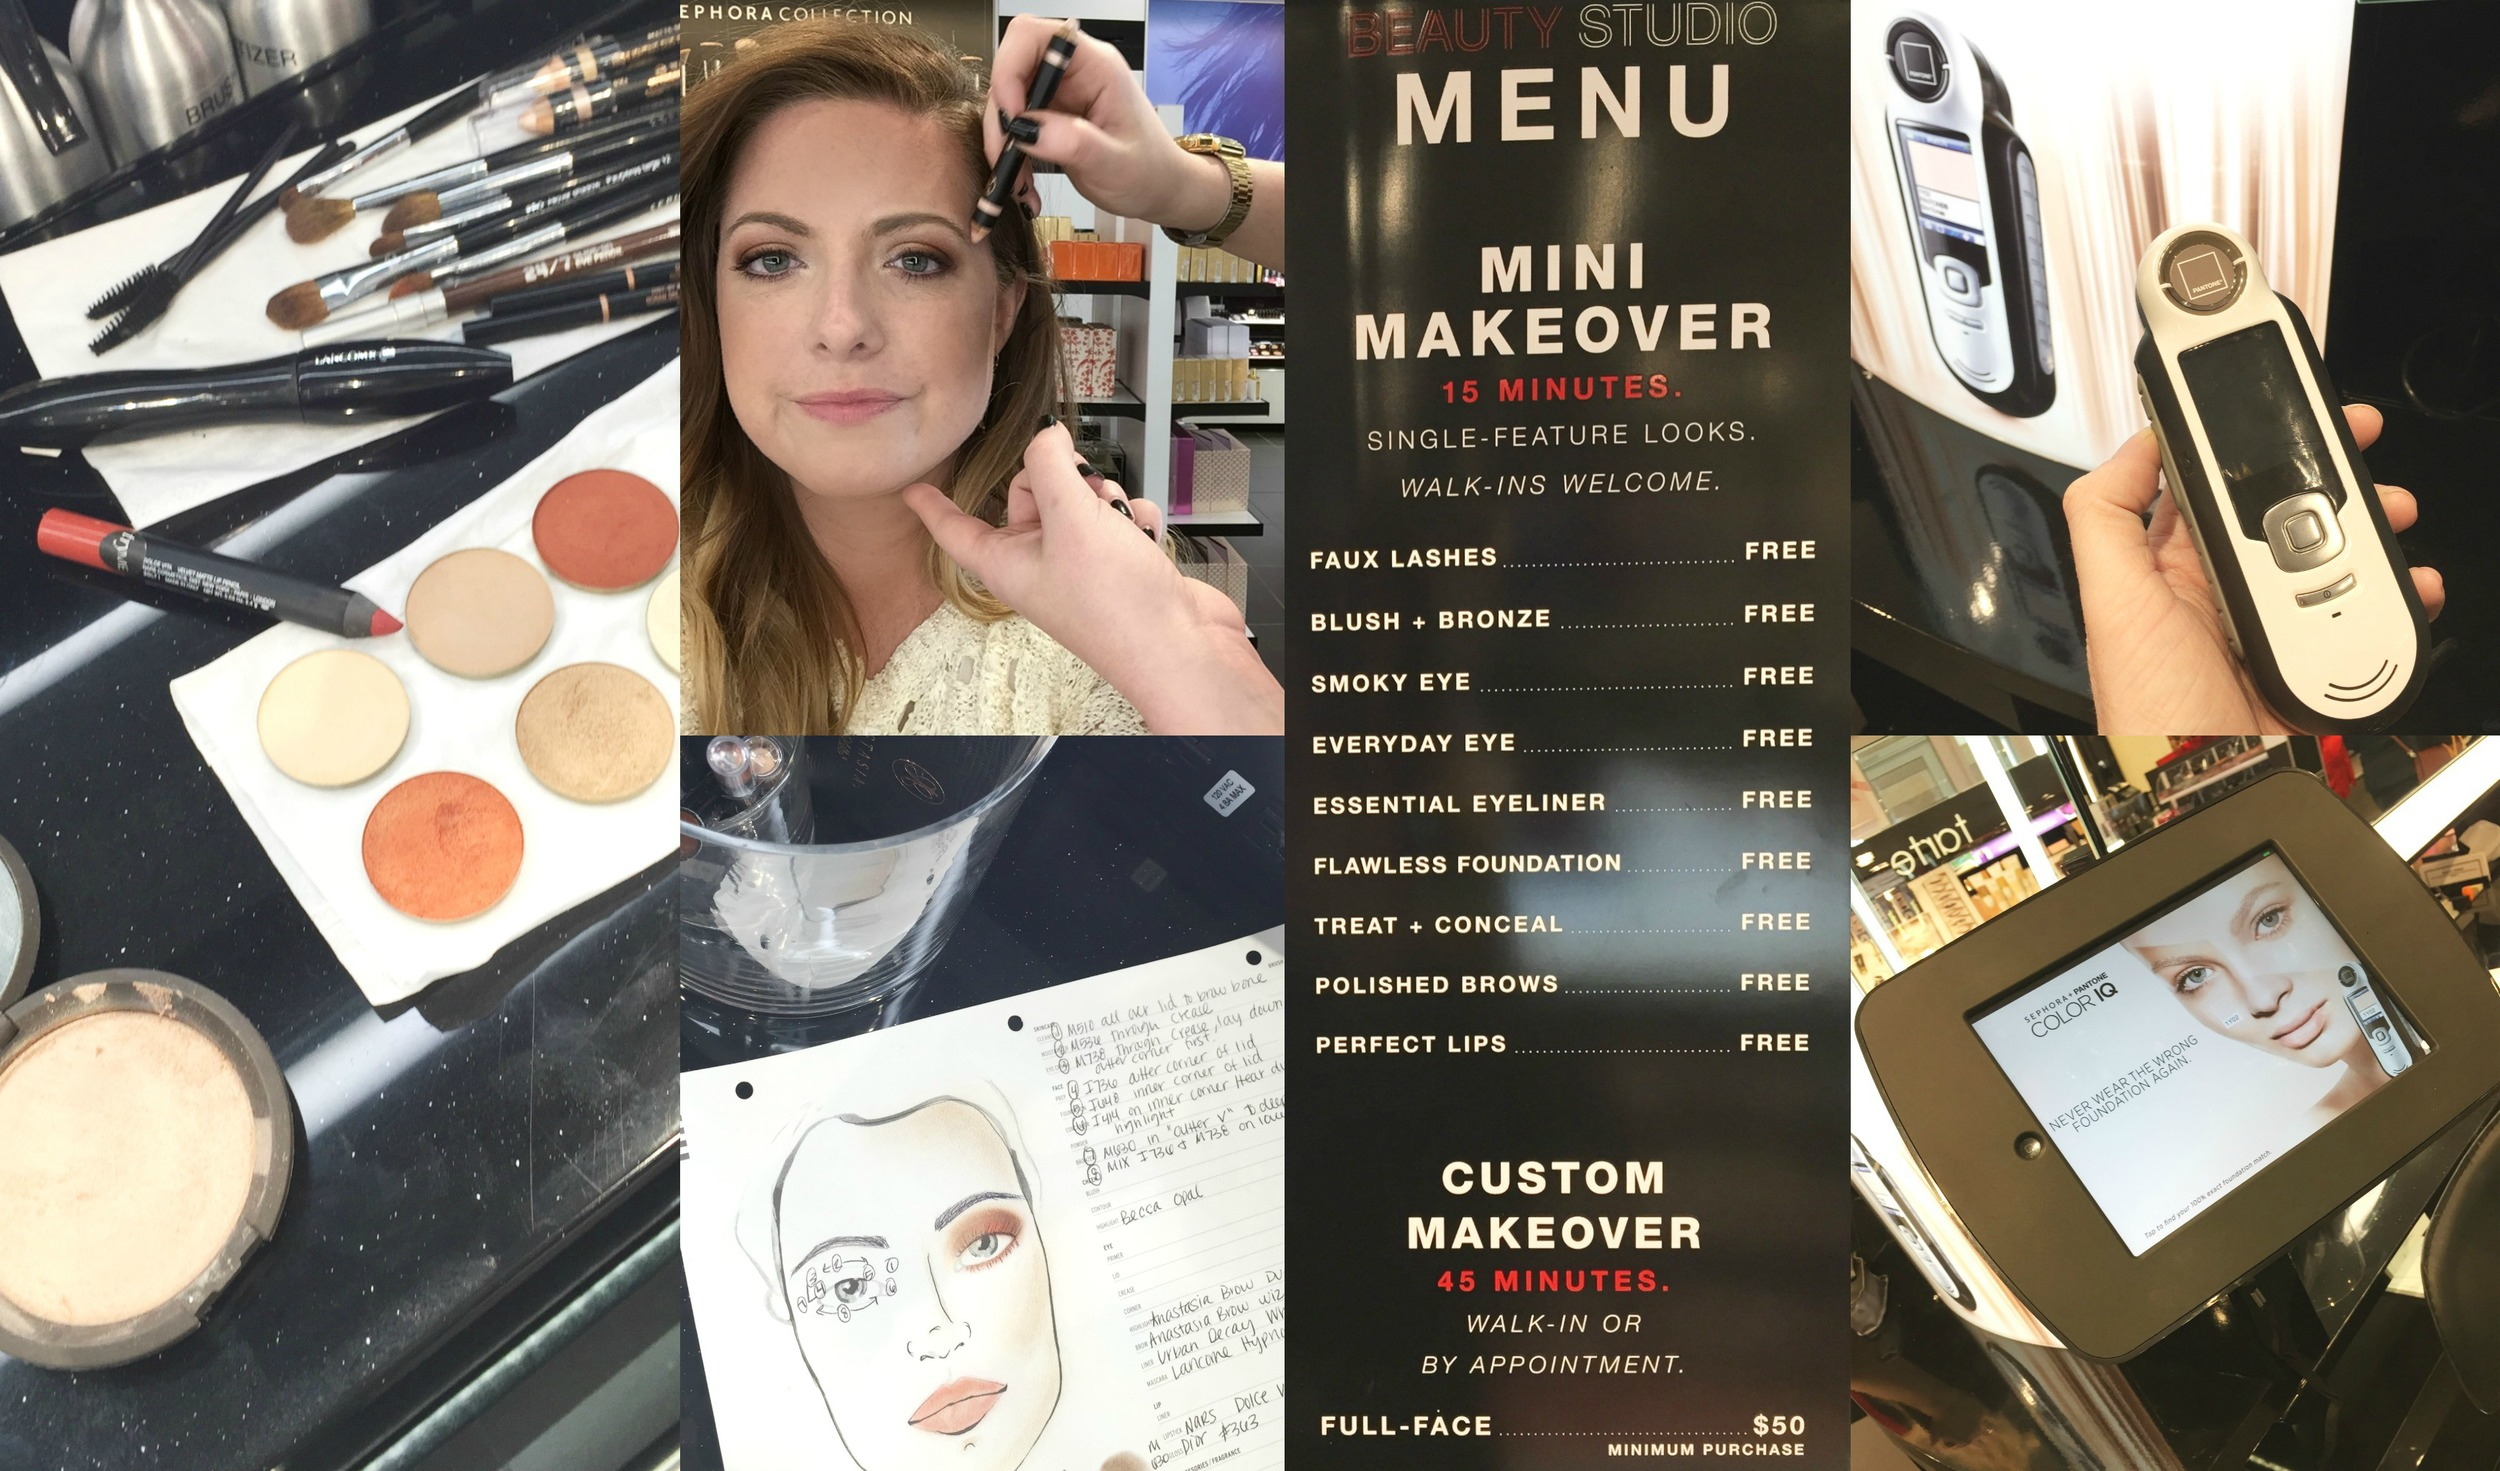 Here are links to all achieve my make up look:  1)    M510    all over lid to brow bone 2)    M536    through crease 3)    M738    through crease, lay down at outer corner first 4)    I736    Outer corner of lid 5)    1648    inner corner of lid 6)    I414    on inner corner/ tear duct to highlight 7)    M630    in outer v to deeper look 8) Mix    I736    &    M738    on lower lash line.    Becca OpalHighlighter    for cheeks,    Anastasia Brow Duality in Camile/Sand    for eye highlight (pictured above),    Anastasia Brow wiz in Soft Brown    for defining my brows,    Urban Decay Whiskey 27/7 pencil    for eye liner,    Lancome Hypnose Drama    for mascara,    Nars Dolce Vita Velvet Matte Pencil    for color,    Dior #363    for pinkier gloss.